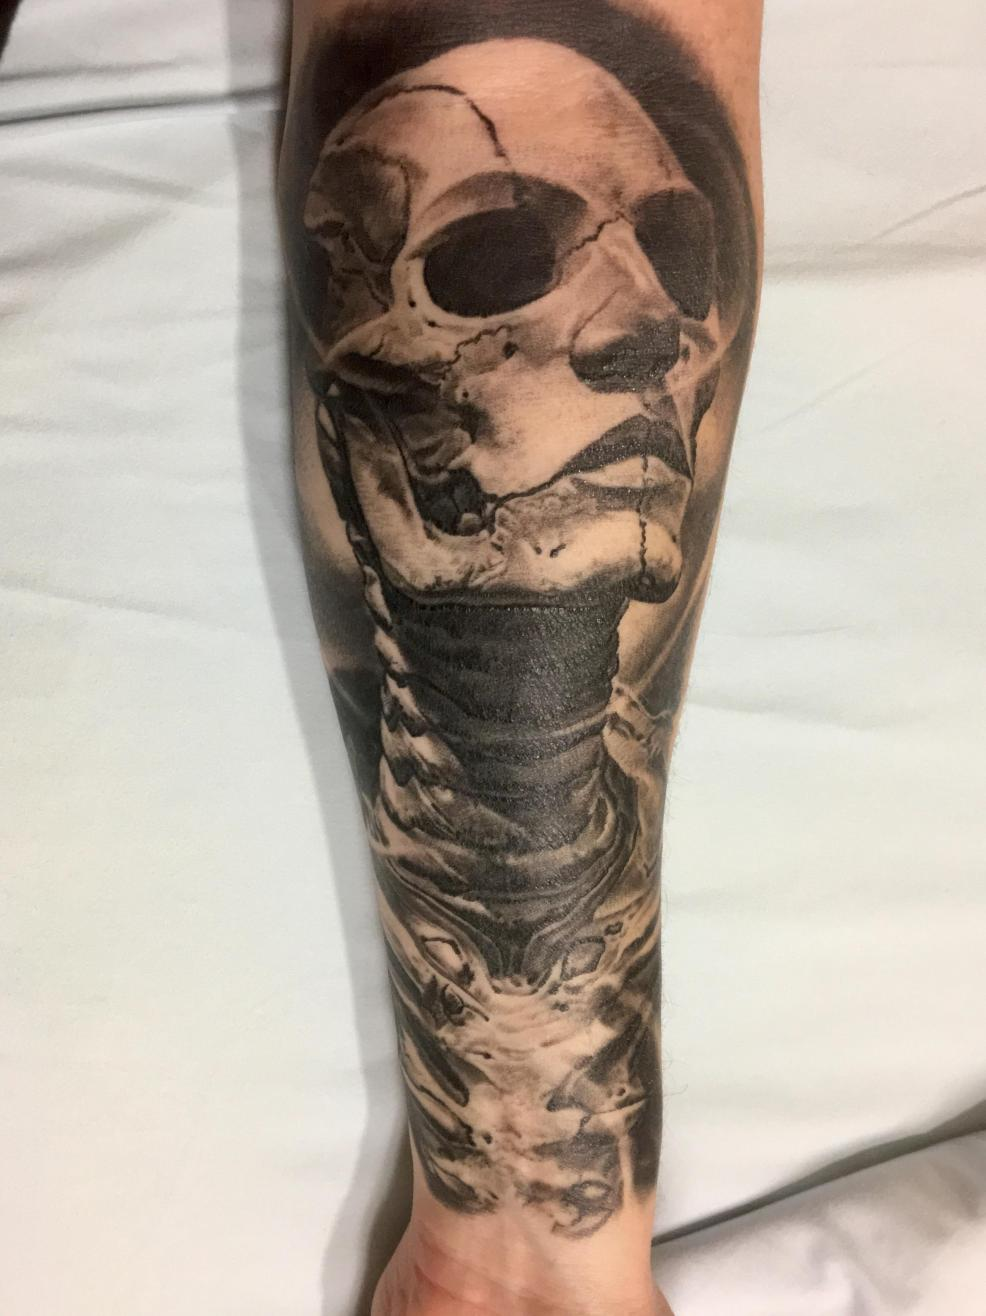 Done At The Dc Tattoo Convention By Robby Latos Of Damascus Tattoo